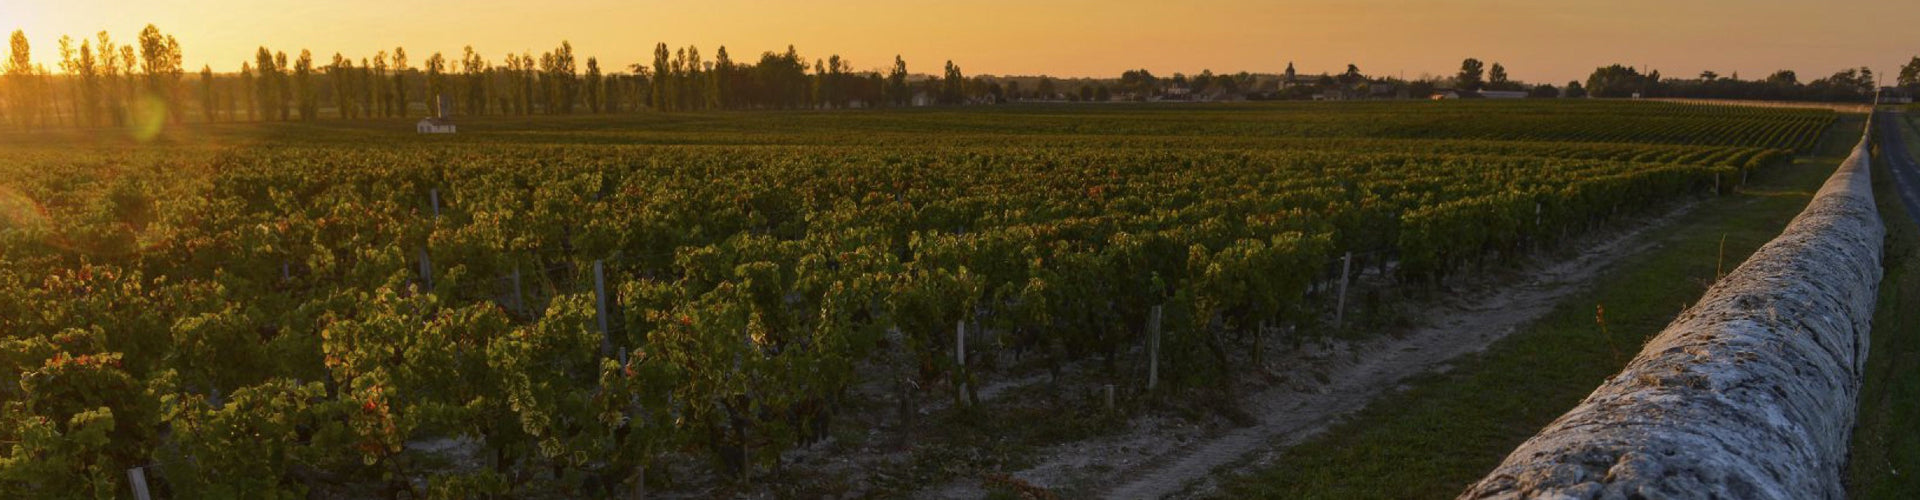 Vineyards in the Margaux appellation of Bordeaux